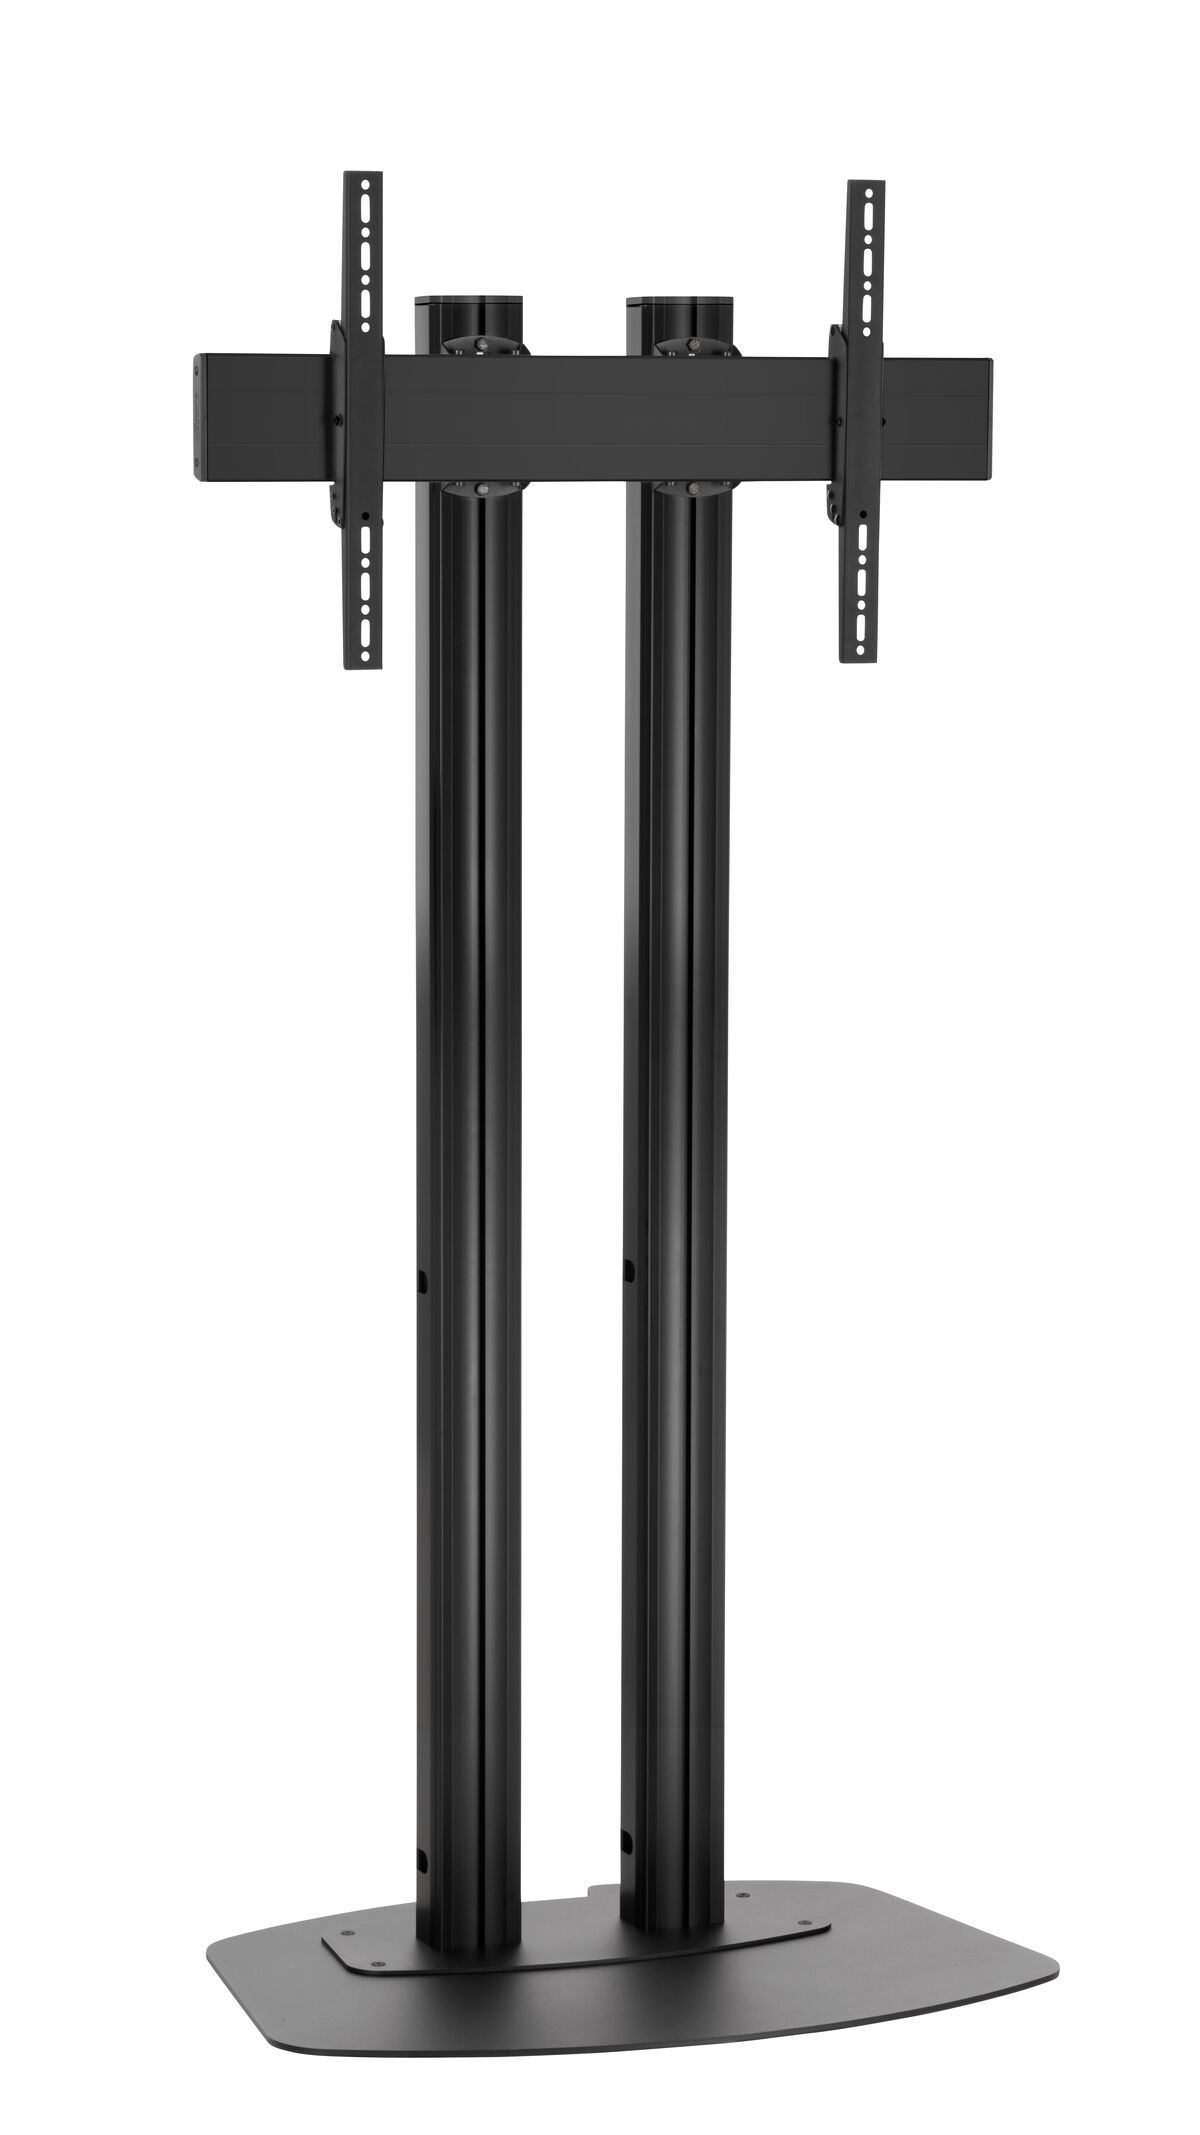 Vogel's FD1884B Floor stand - Product